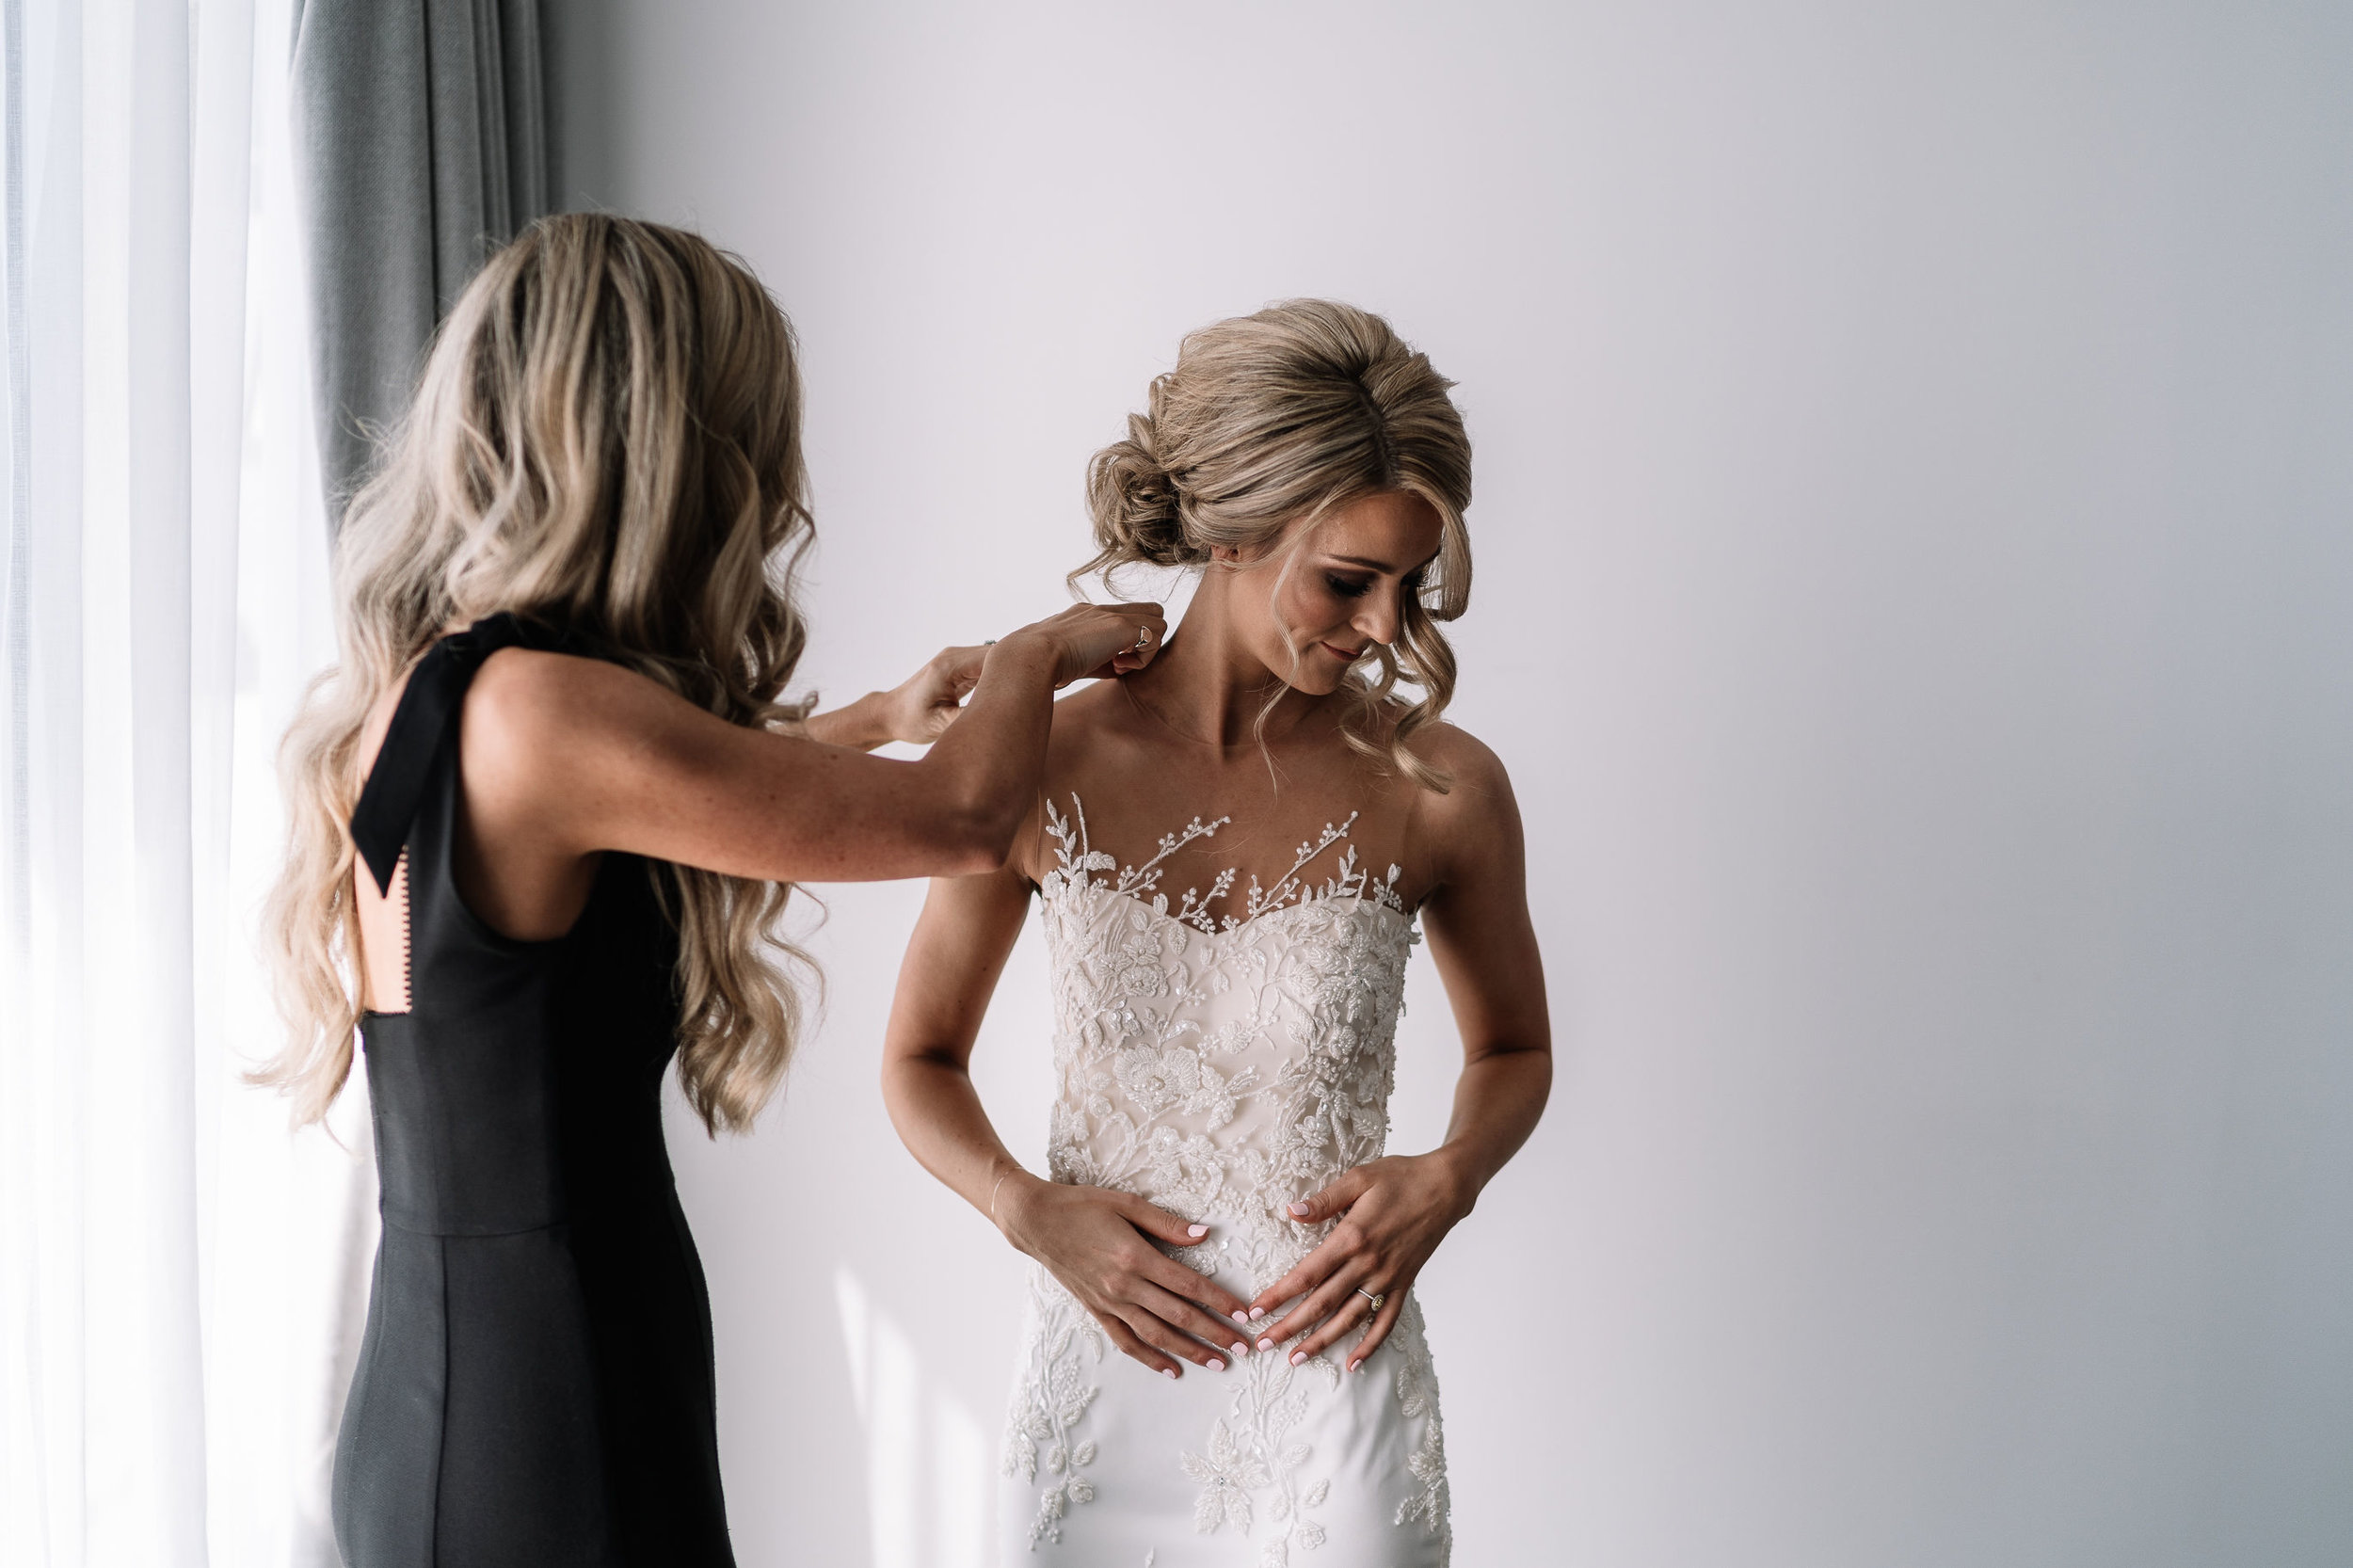 "Nicole, April 2019 - ""Just wanted to send you an email saying thank you so much for my wedding dress, it was absolutely perfect!! The changes we made looked amazing and the fit was just perfect.Thank you also for all your support and reassurance in the lead up to my wedding. You were always the professional but also a personal touch, especially for me as I was trying to make all the decisions on my own with family being back in Australia.After visiting so many dress stores and have no luck what so ever I was feeling completely defeated. We sat down and discussed what I had envisaged, looked through the catalogs and then tried dresses that we chose together, finding my Viero dress. Just a perfect experience, from start to finish!!""- Nicole"